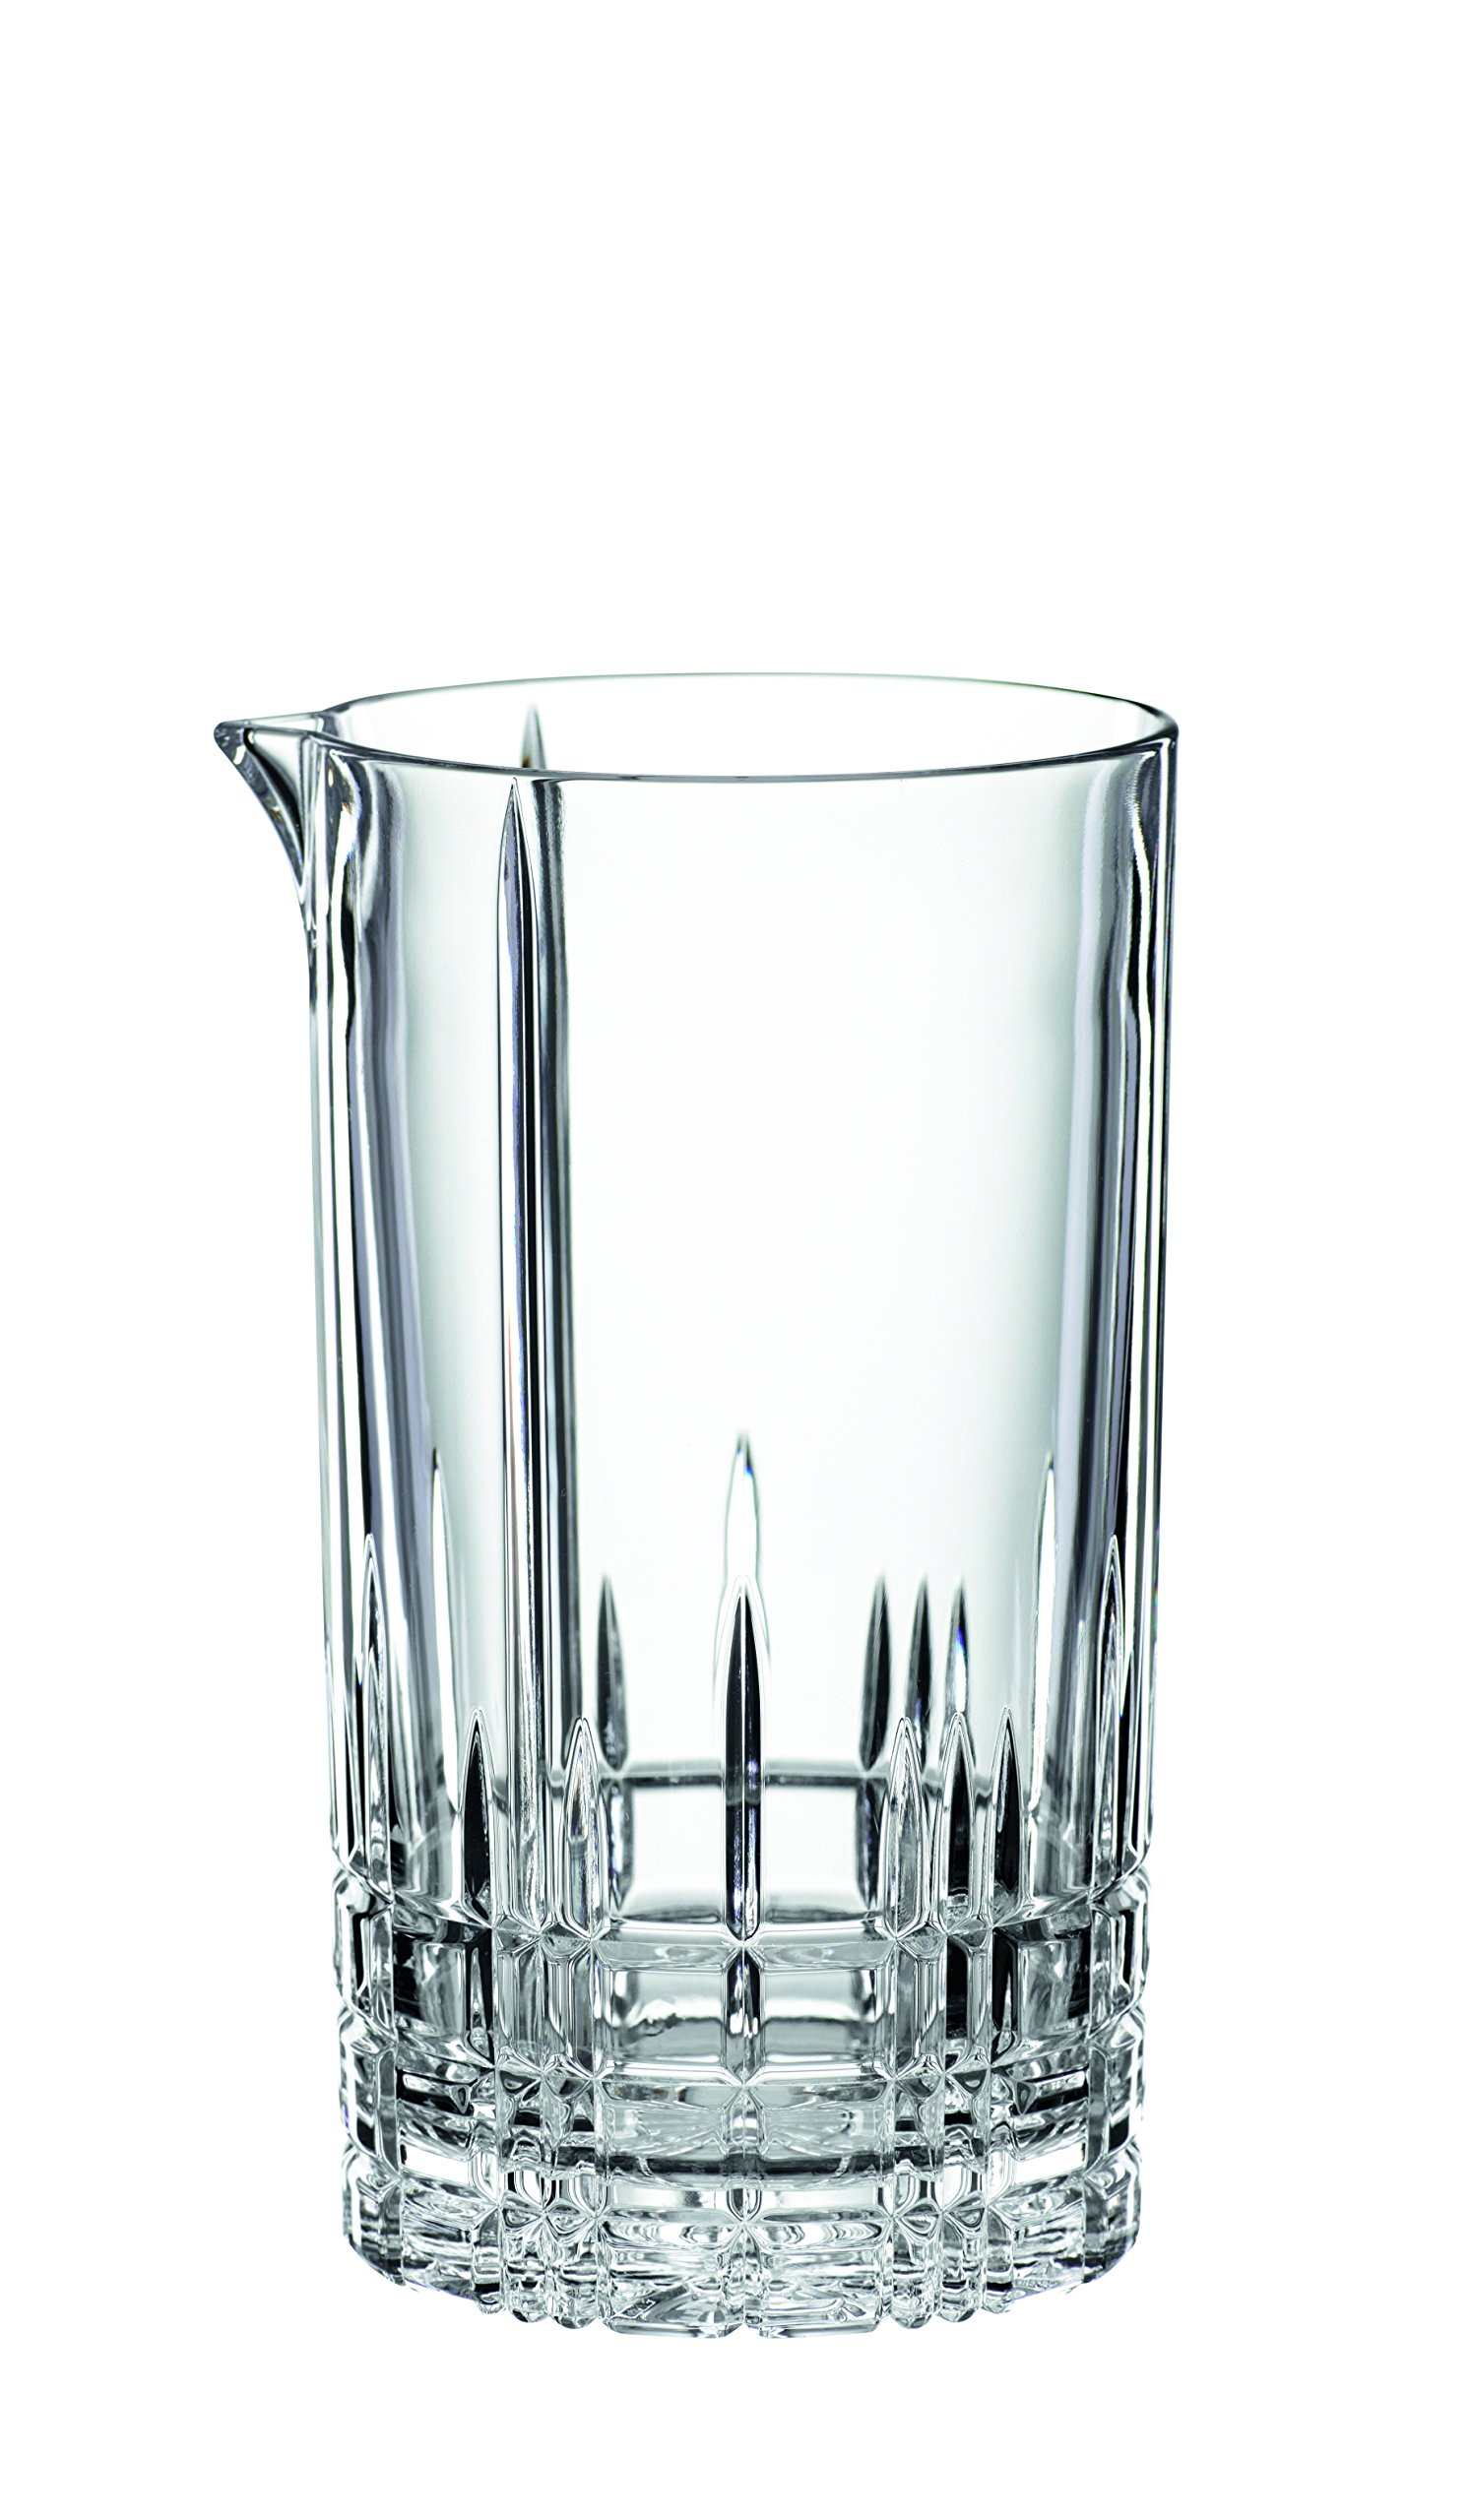 Spiegelau 22.4 oz Perfect Mixing glass (set of 1)